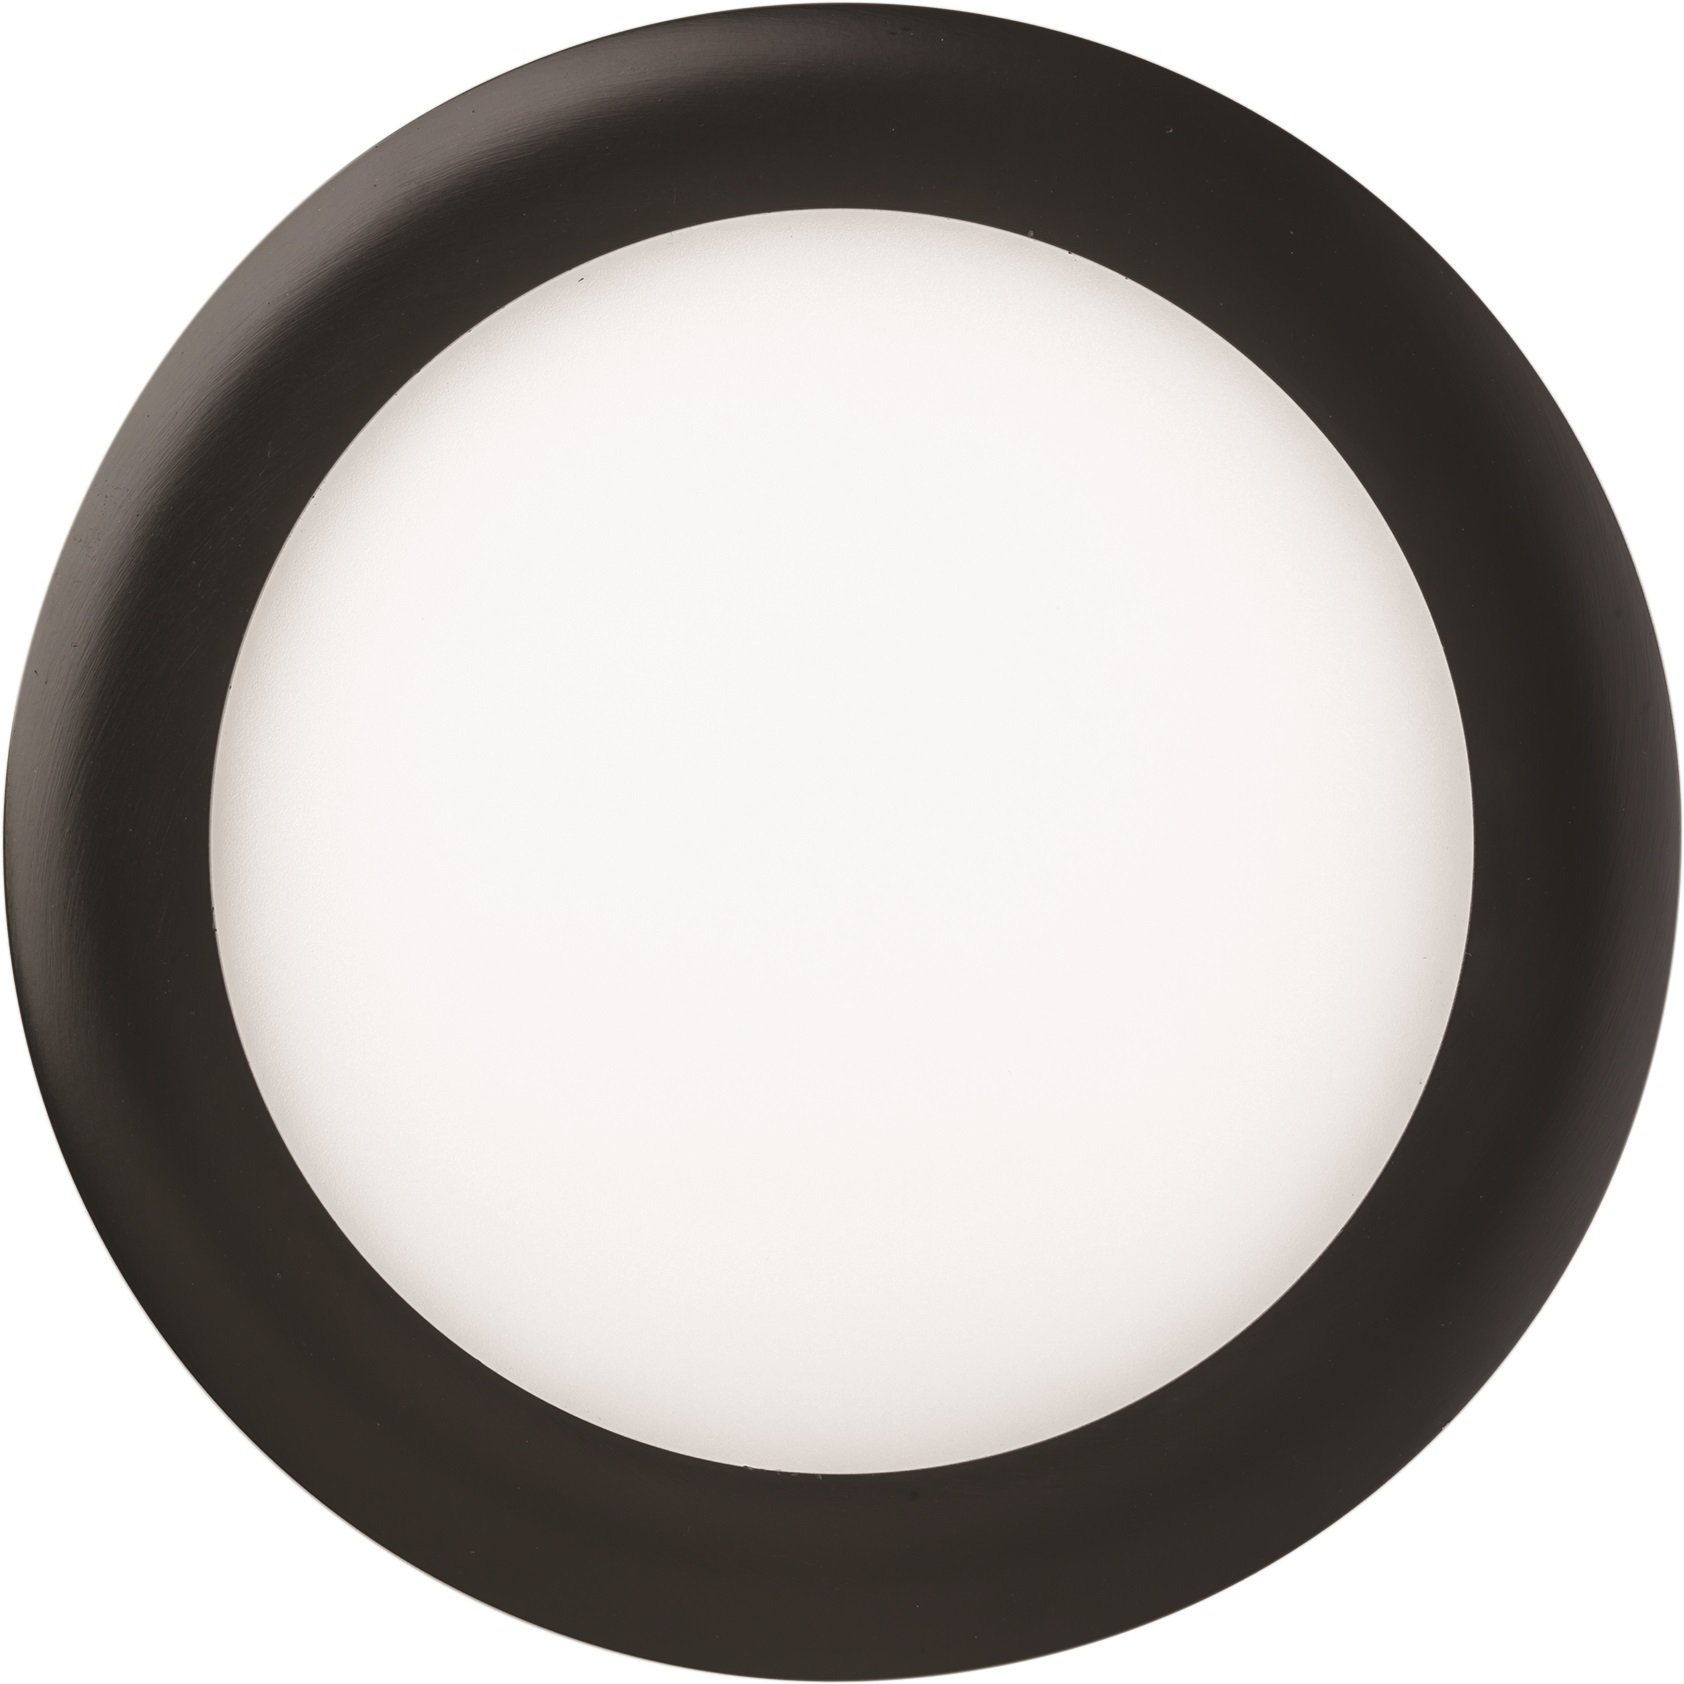 Lithonia Lighting WF6 LL LED 27K MB M6 12.7W Ultra Thin Round Dimmable Recessed Ceiling 2700K, Warm White in Black, 6 inch Lower Lumen Package, Matte Black